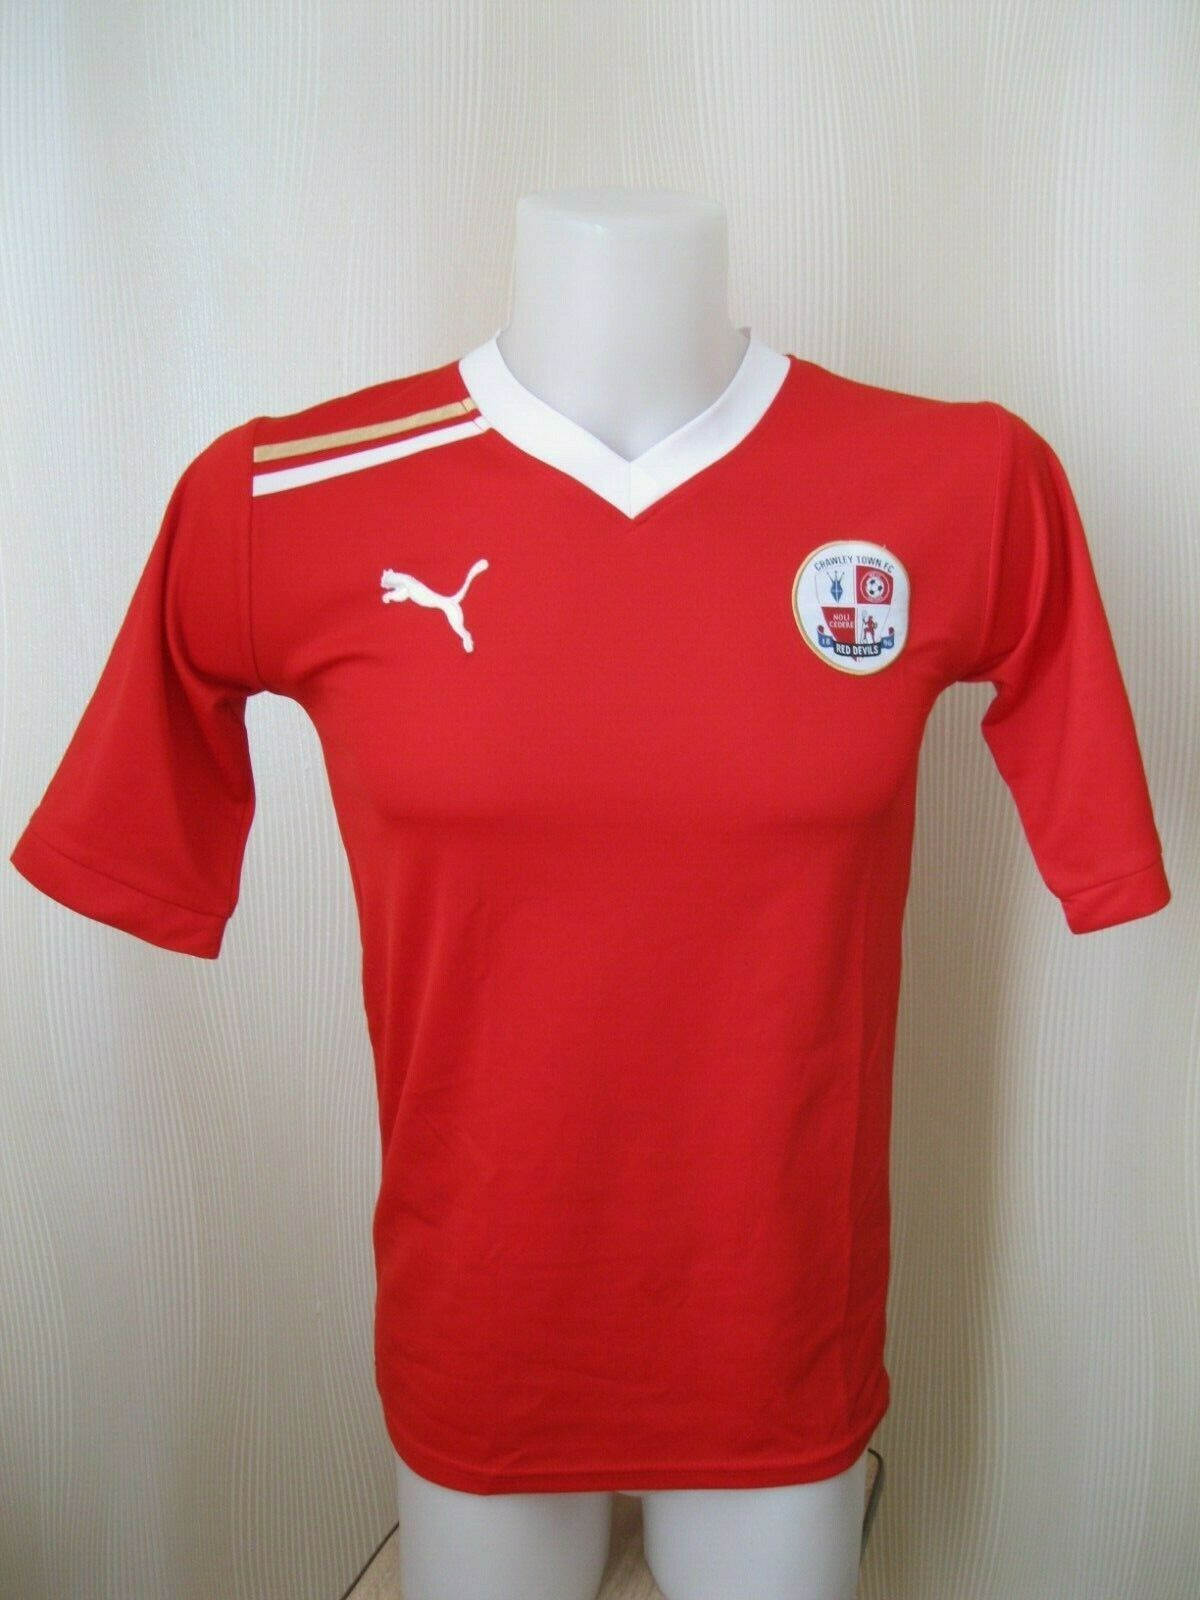 Crawley Town #3 2011/2012 Home Size S Puma jersey